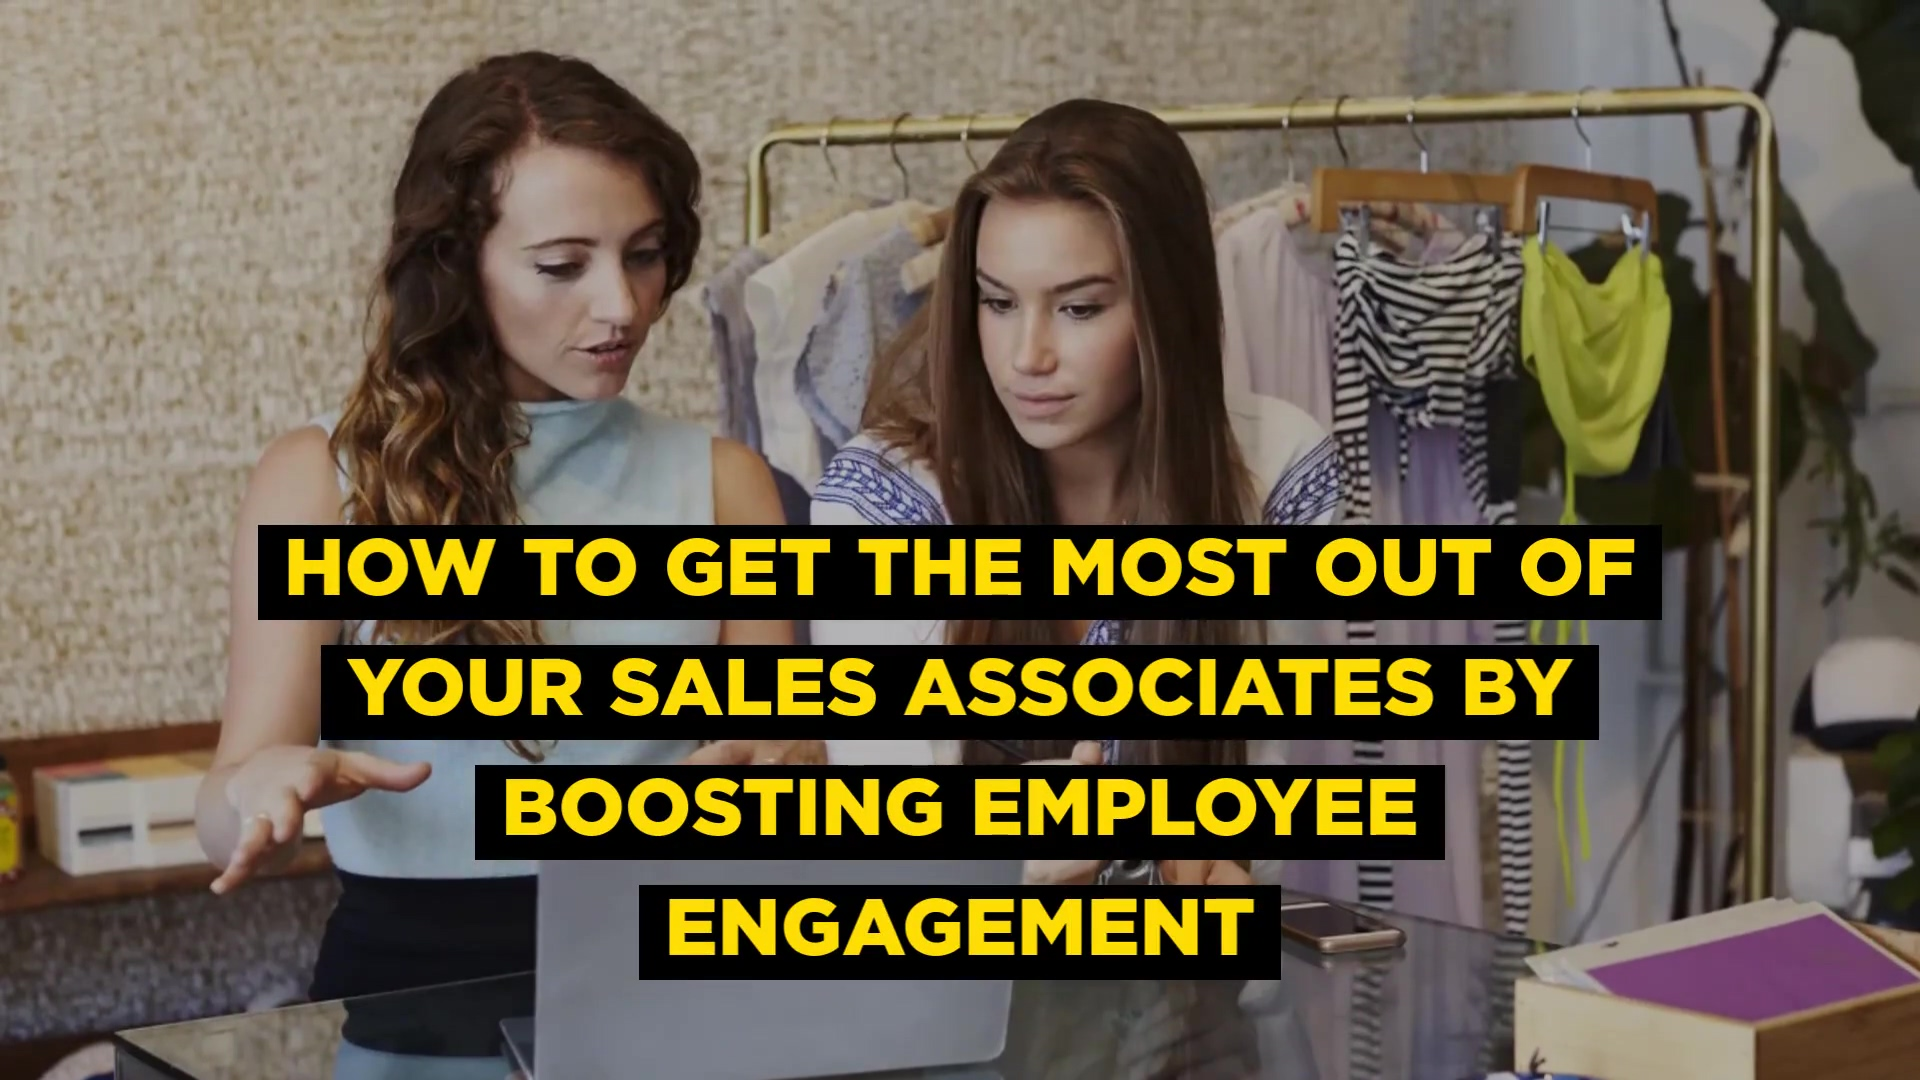 Boosting Employee Engagement Video Blog